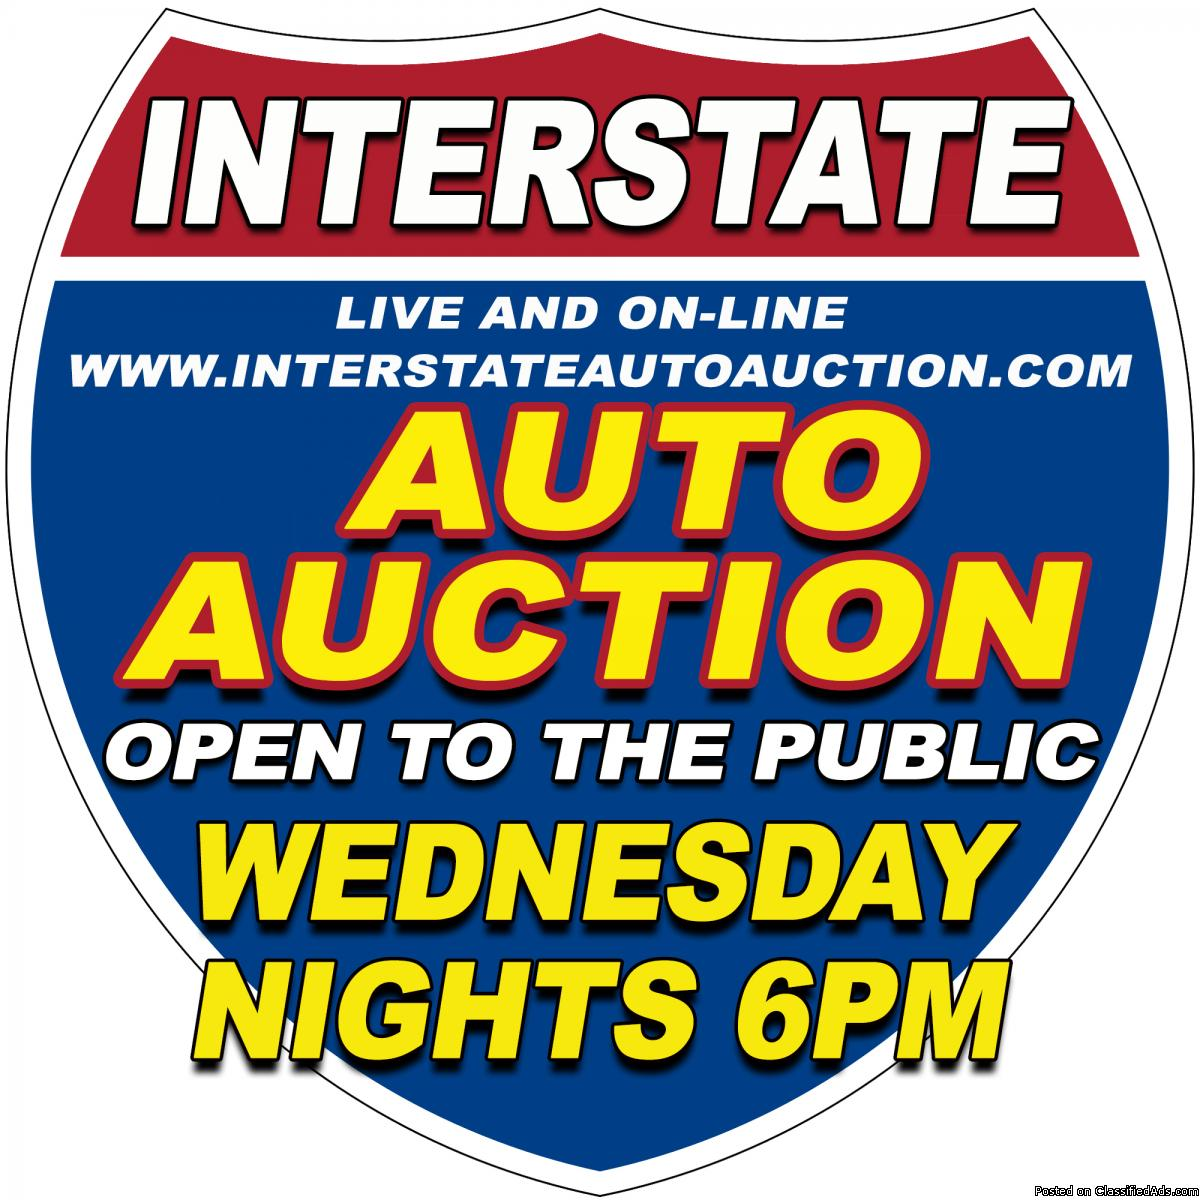 Interstate PUBLIC Auto AUction